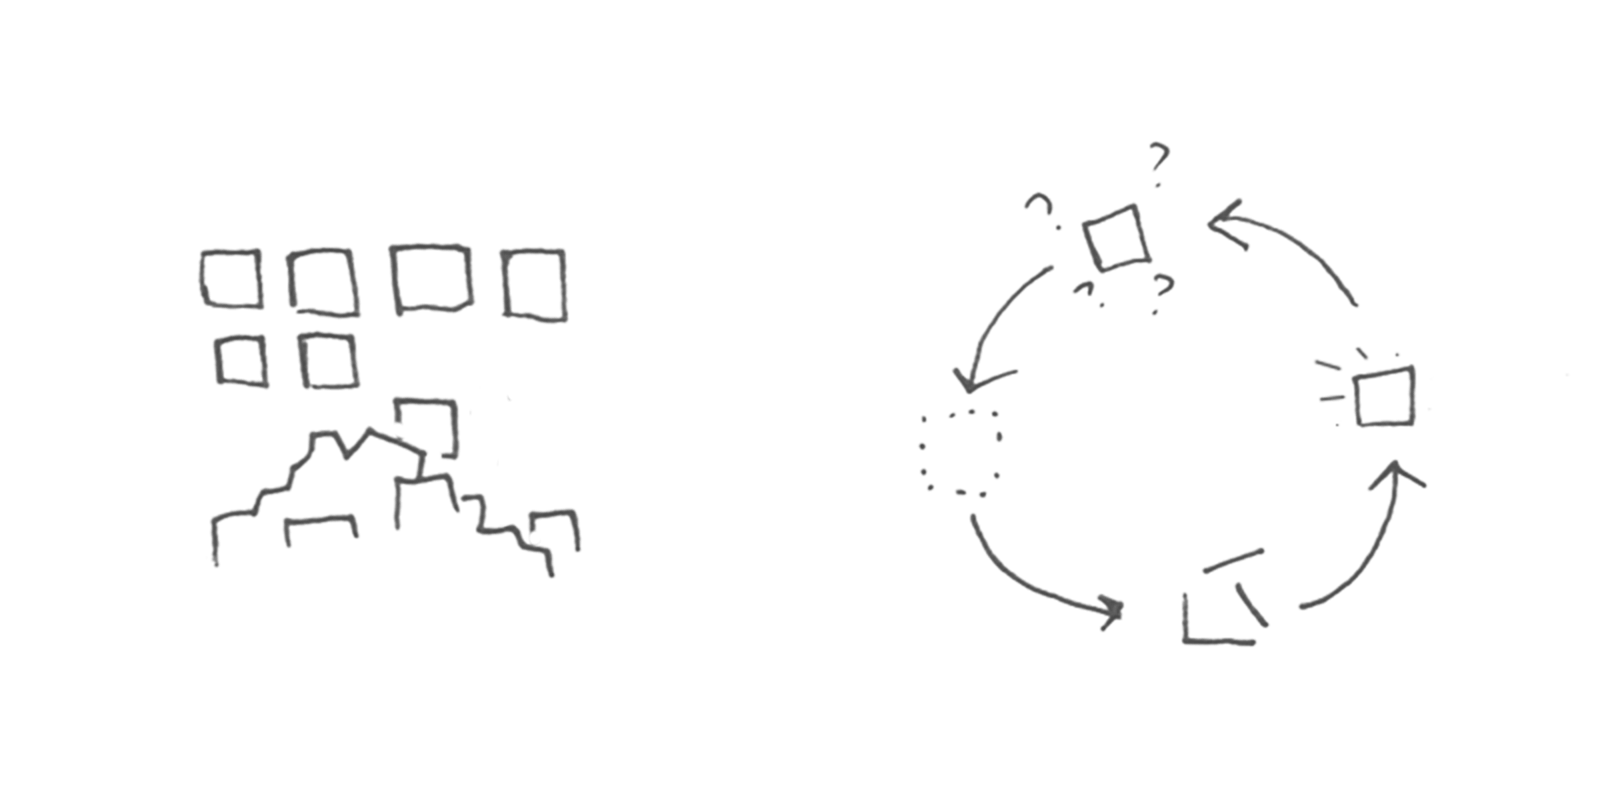 Hand sketch using squares to illustrate building your product